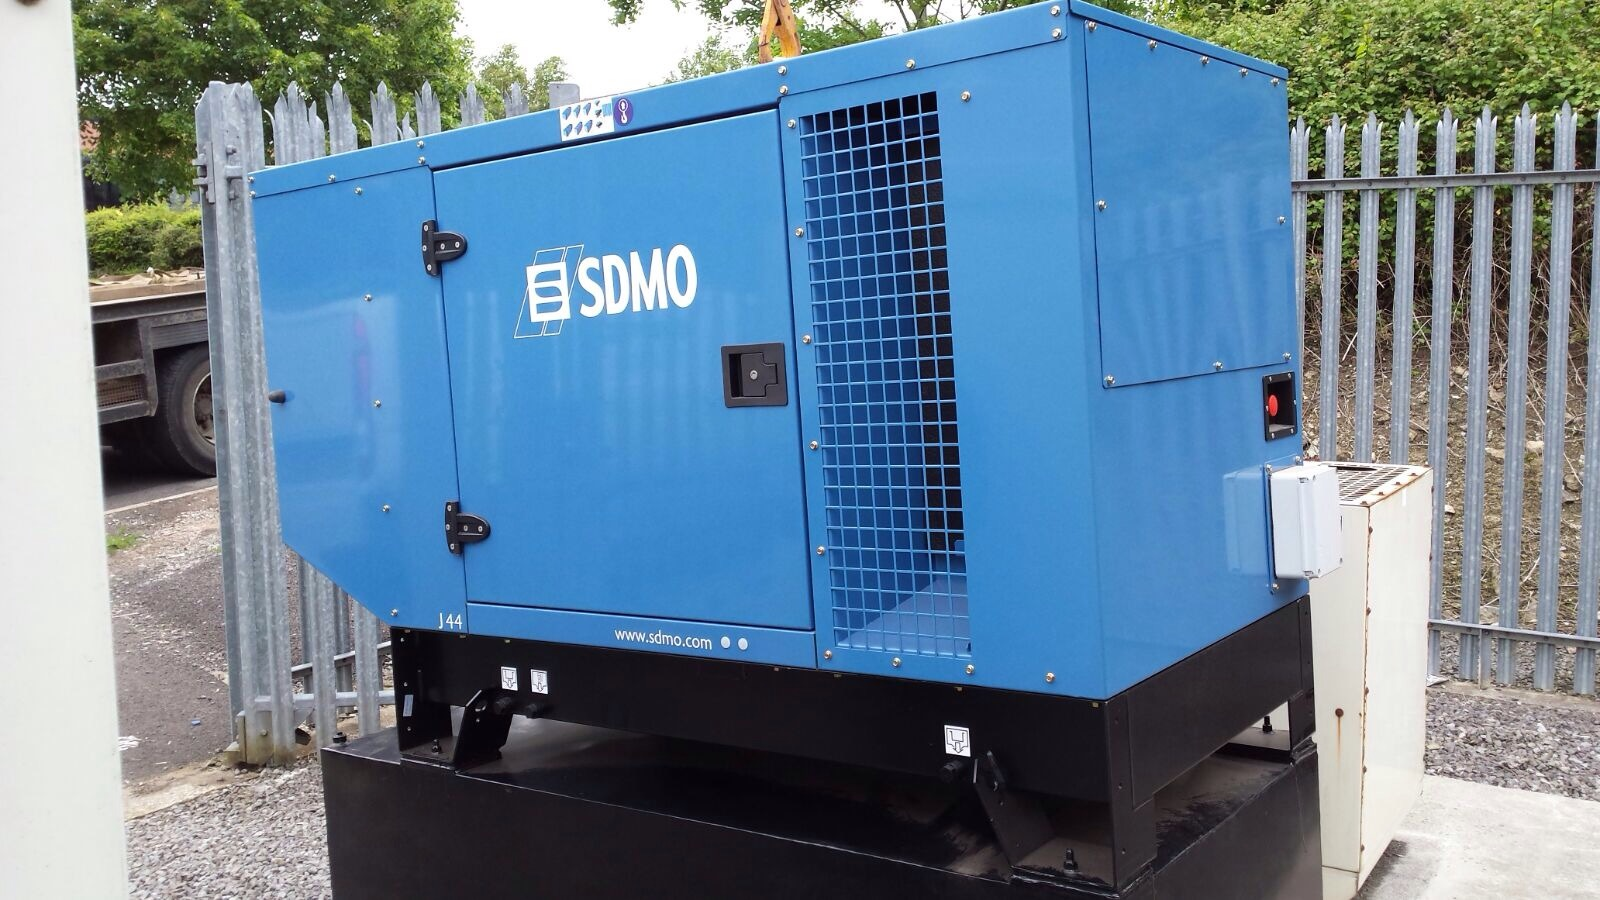 New Generator with secure 24hr fuel tank in bund under genset - designed by GEMS